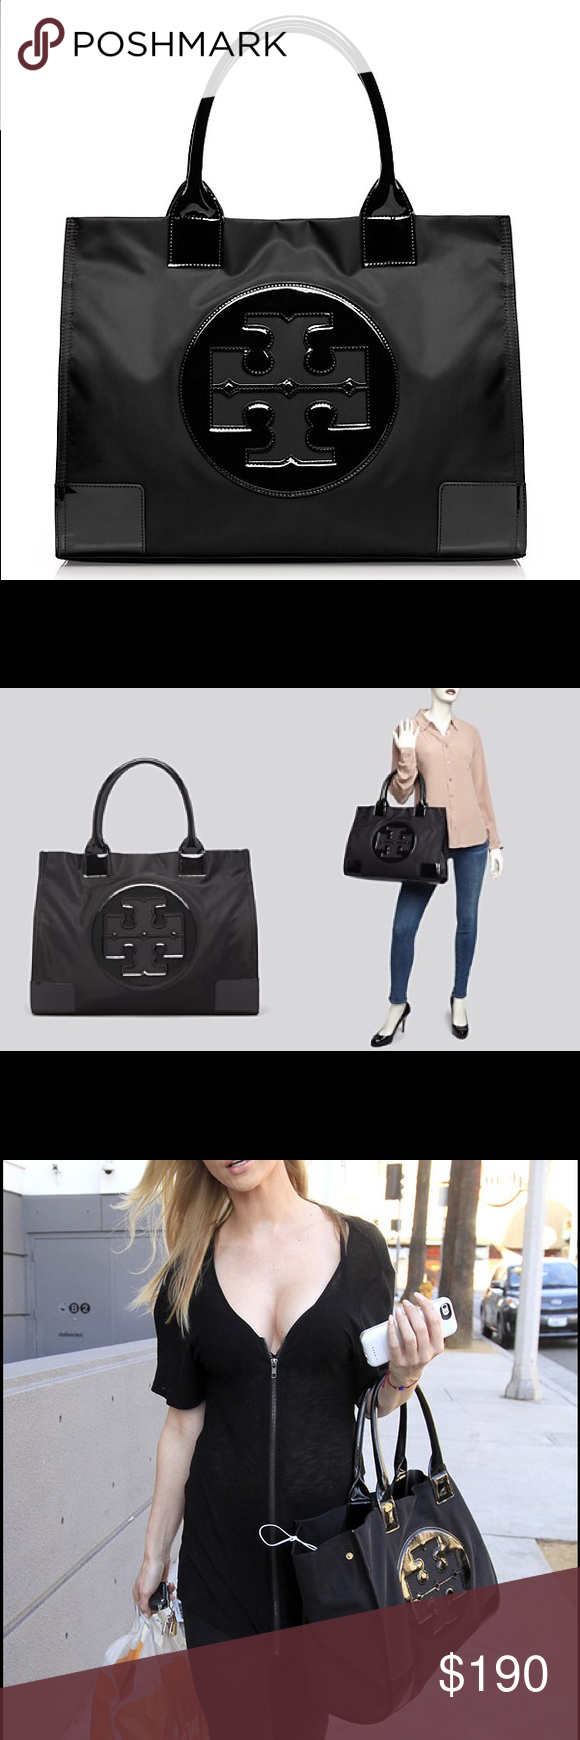 🎉NEW Tory Burch Ella Tote New Tory Burch Ella tote in black Tory Burch Bags Totes